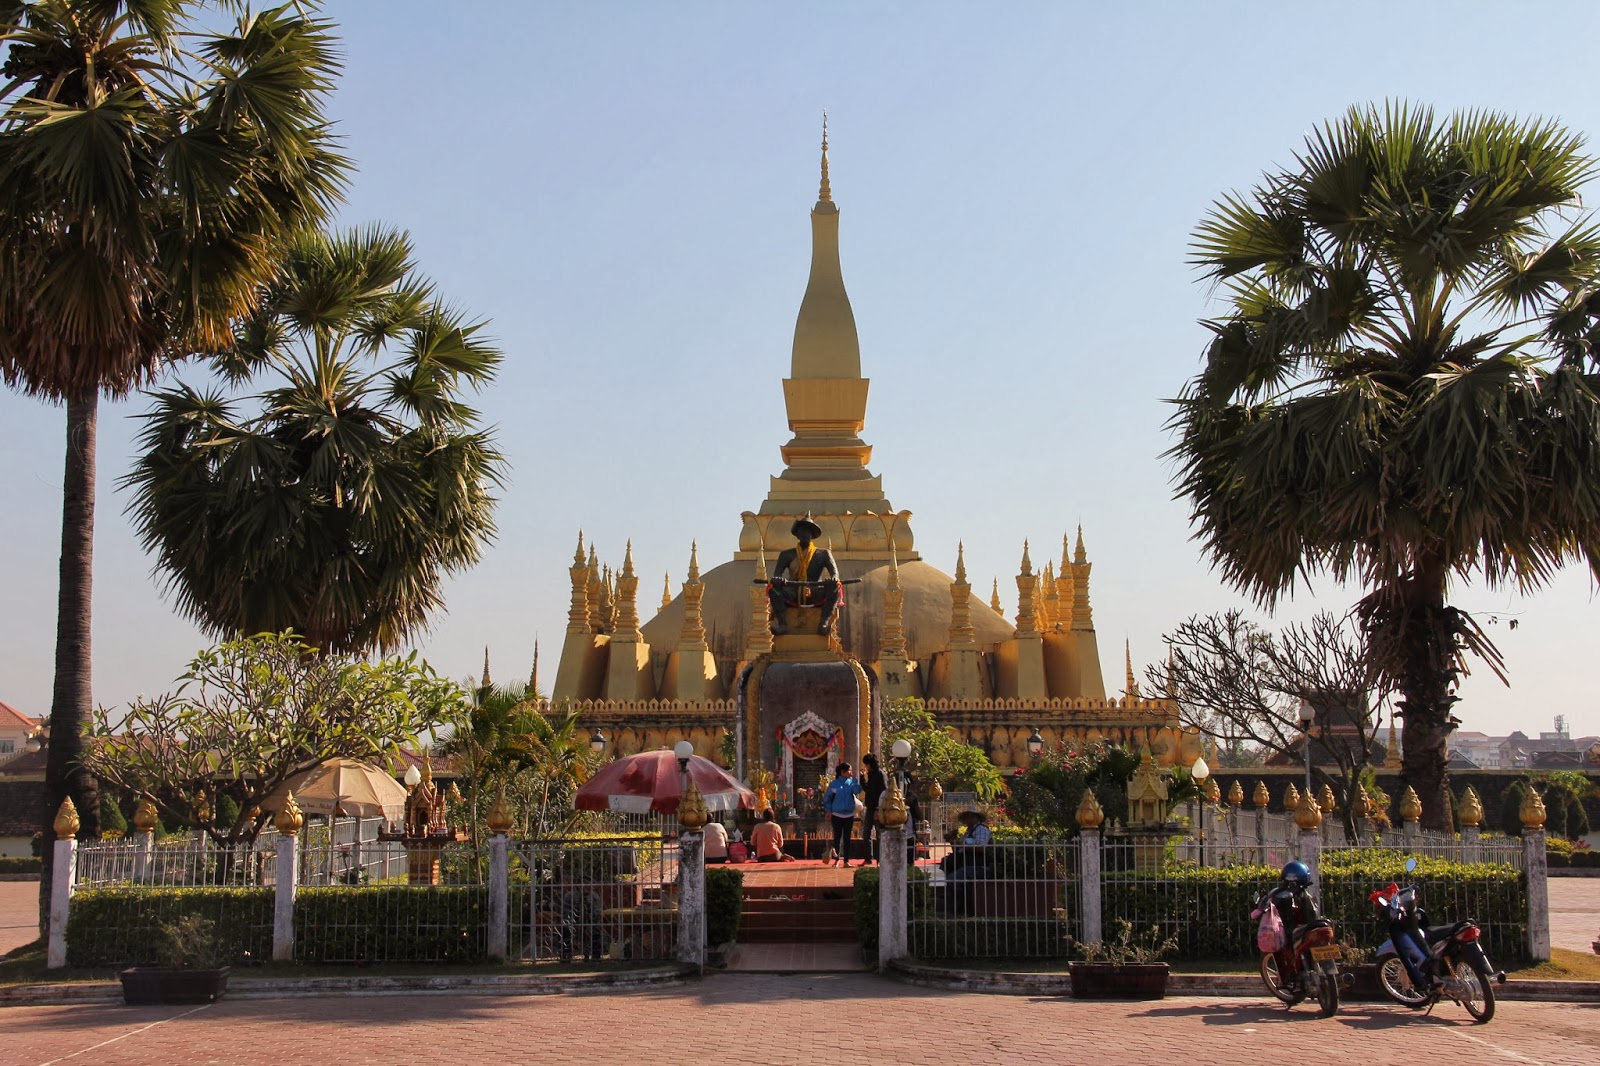 Phra That Luang, the preeminent stupa in Laos, is the Lao national symbol.